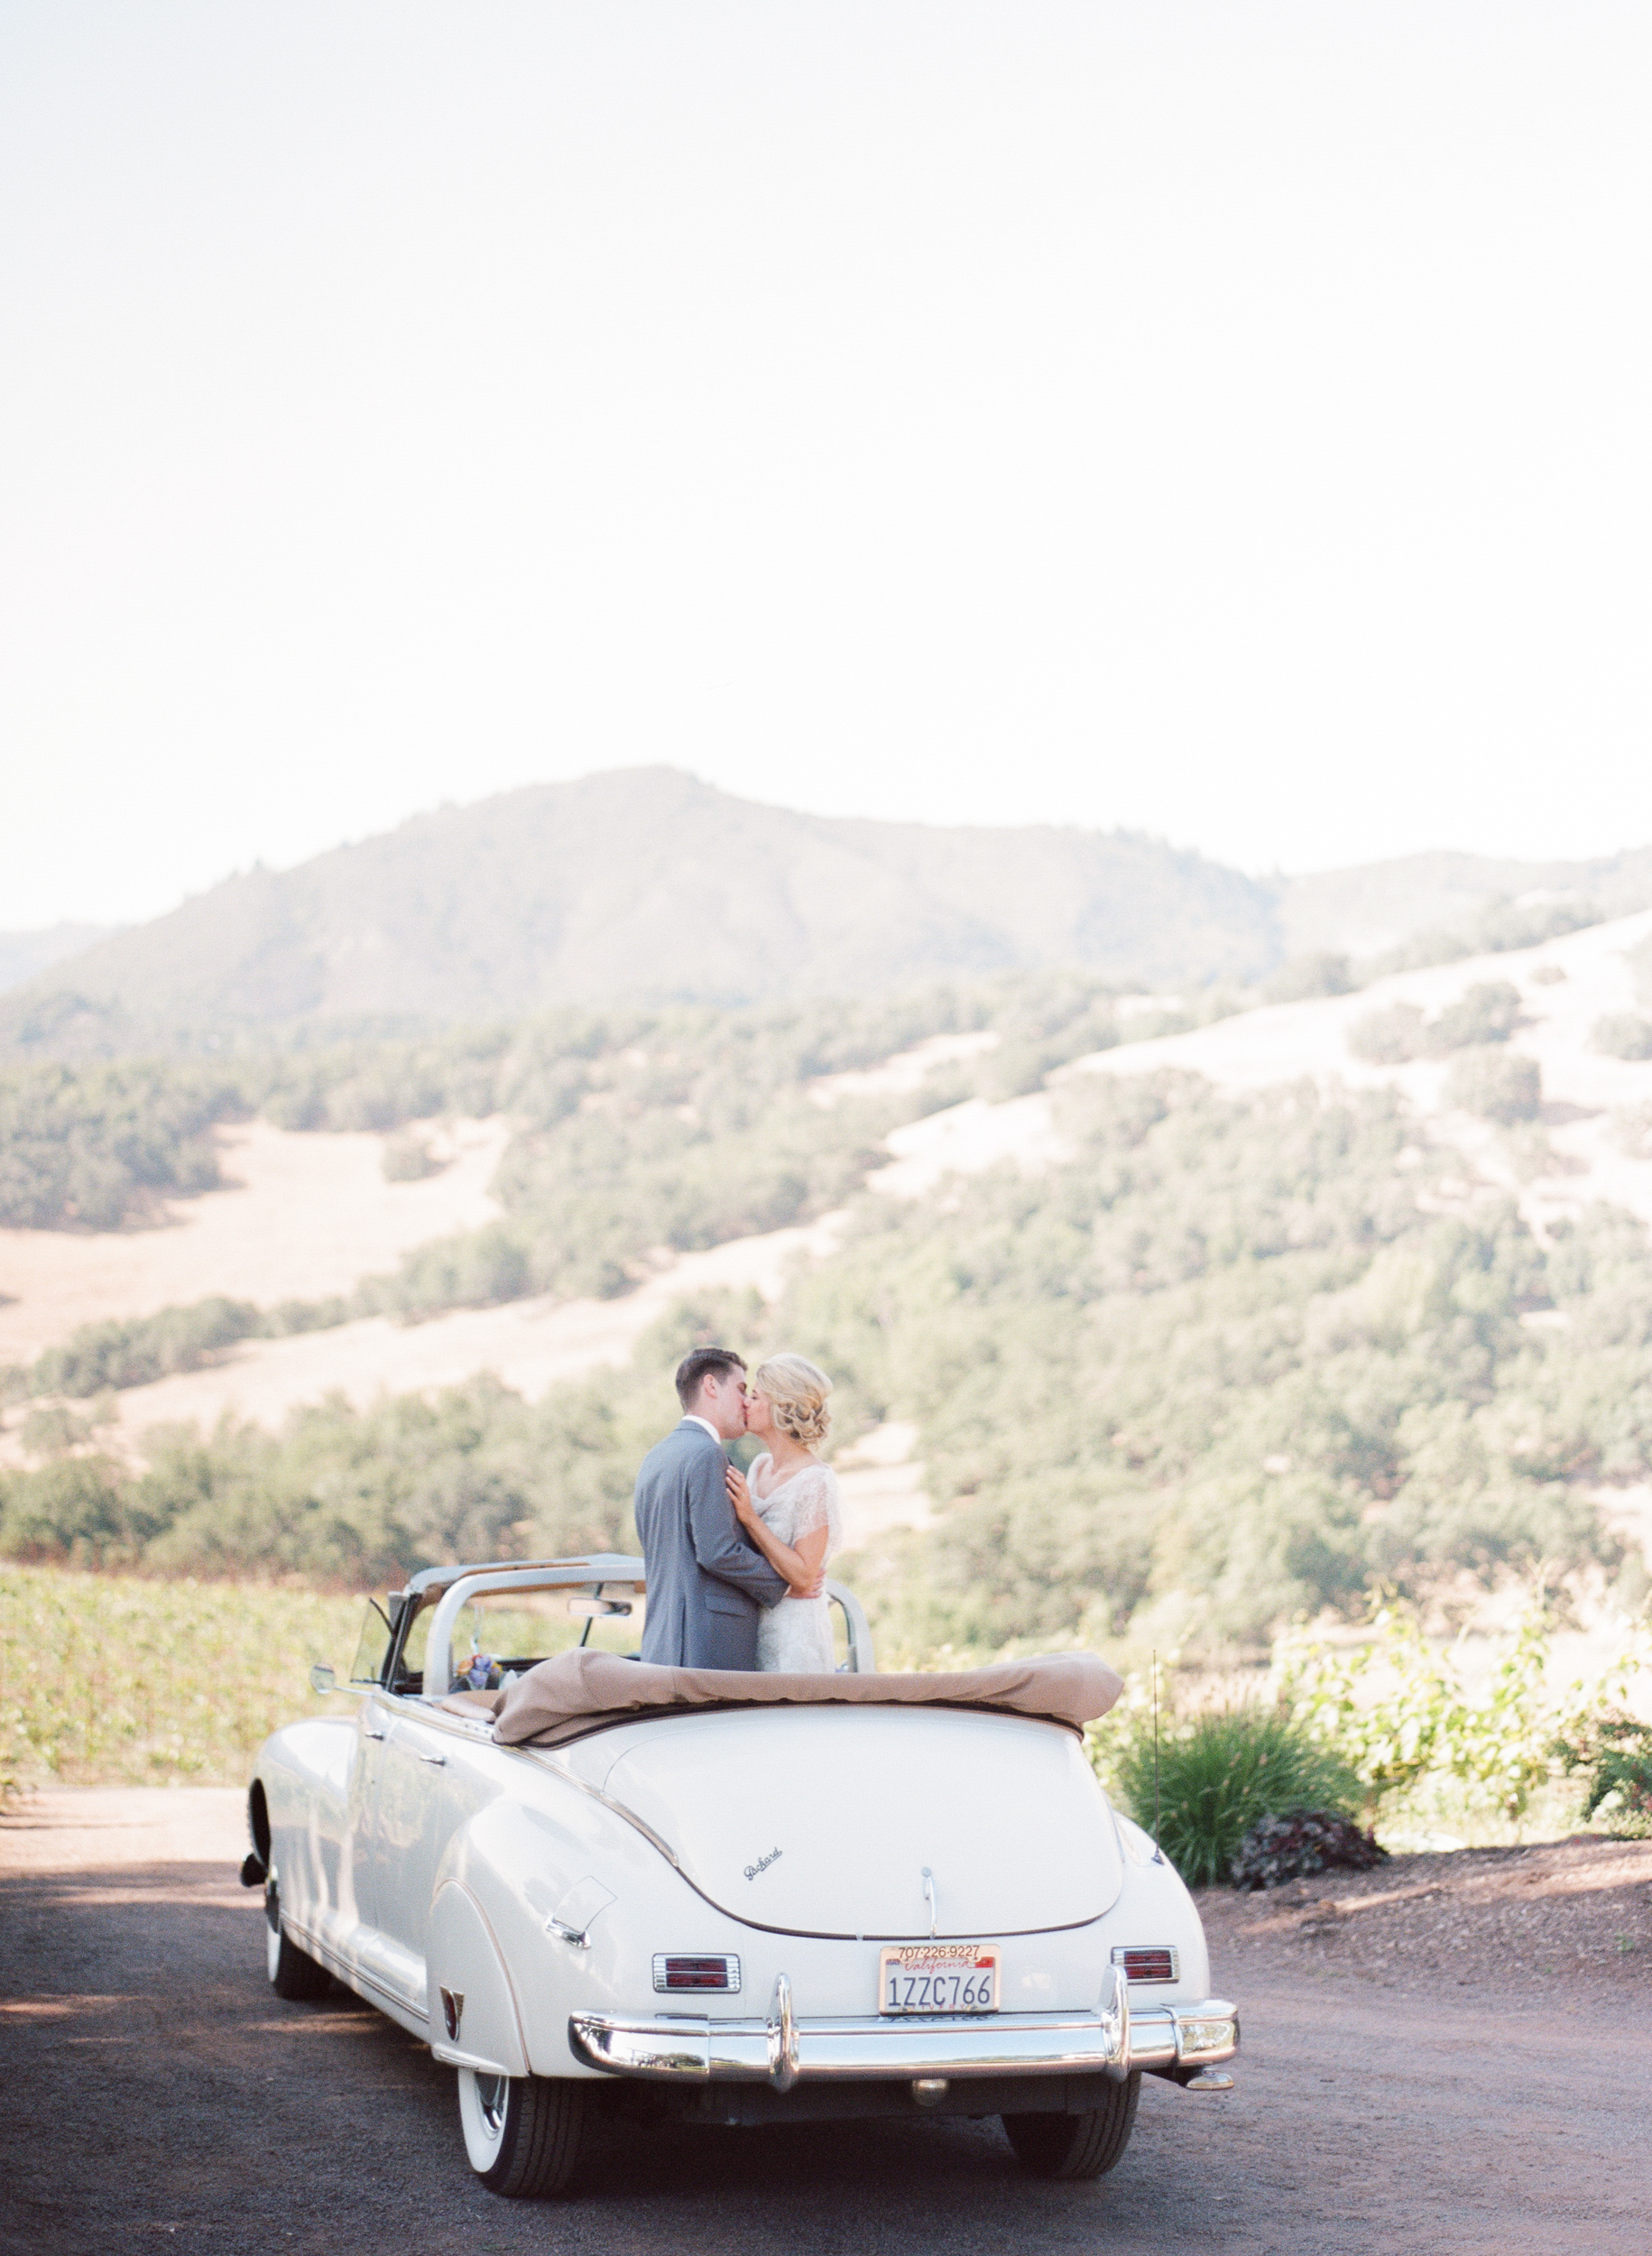 Sylvie-Gil-film-destination-photography-Kunde-winery-Napa-Valley-elegant-shabby-chic-couple-kisses-convertible-vintage-car